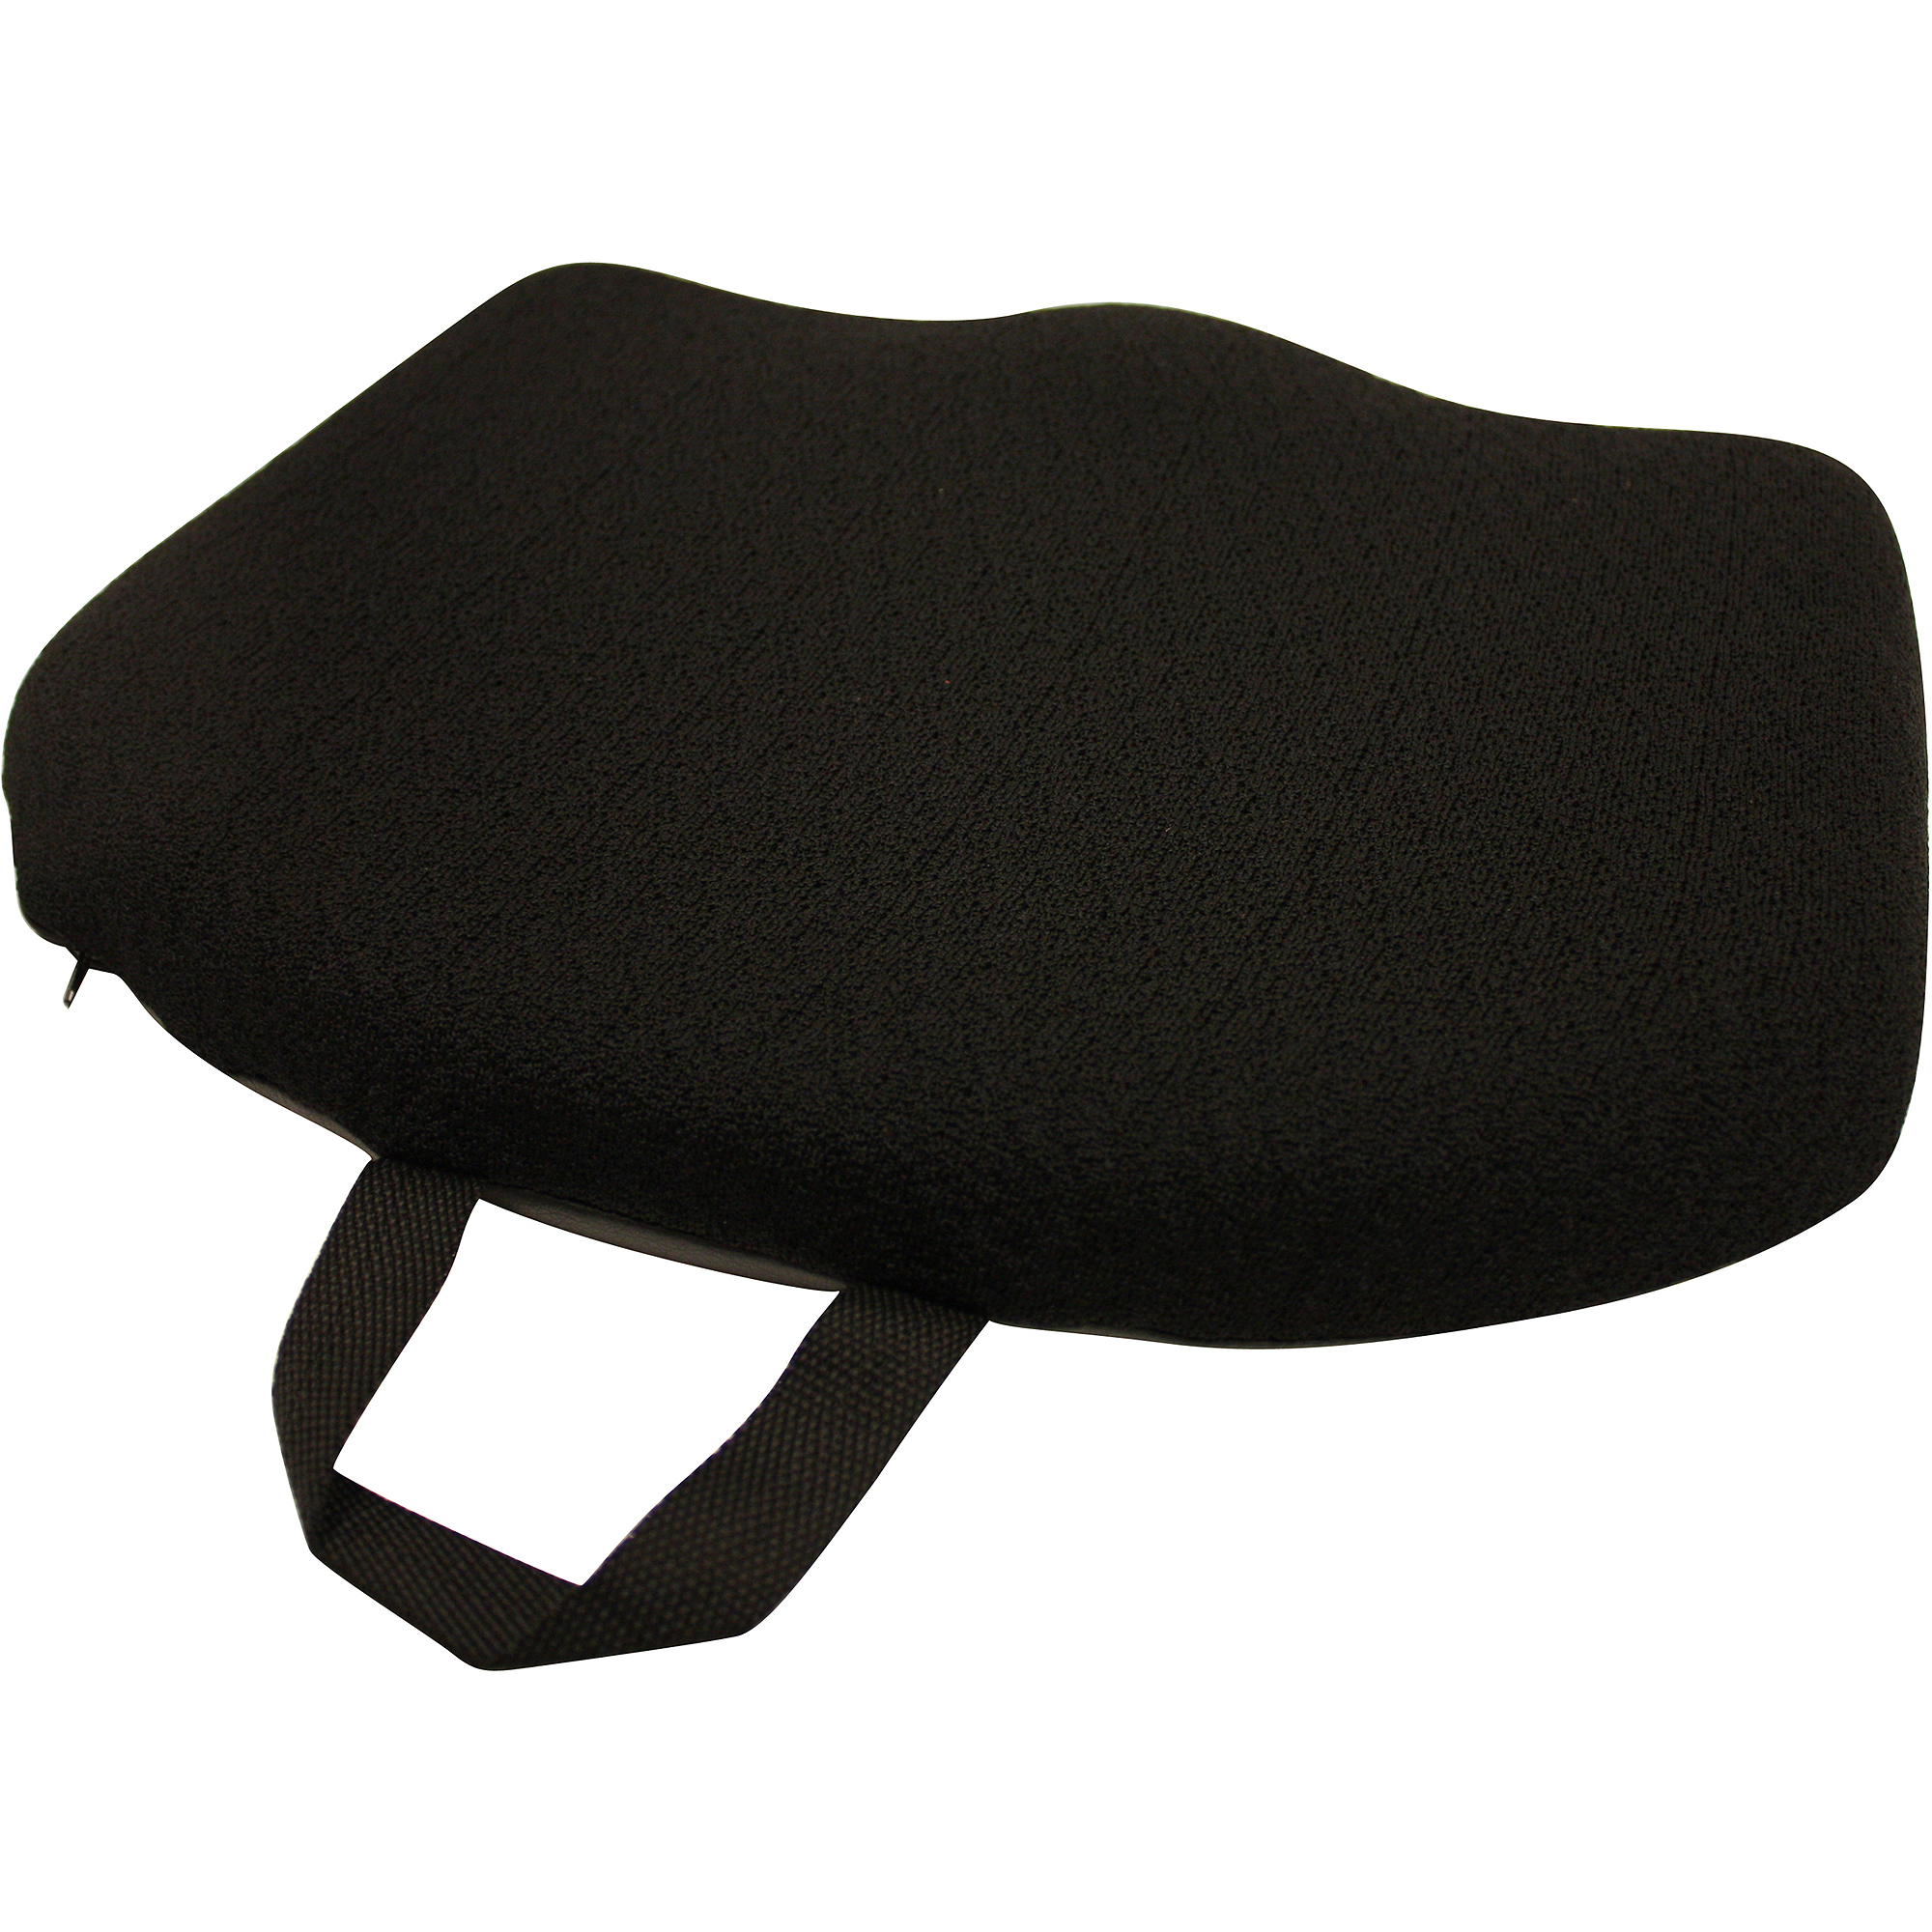 Auto Drive Travel Memory Foam Seat Cushion